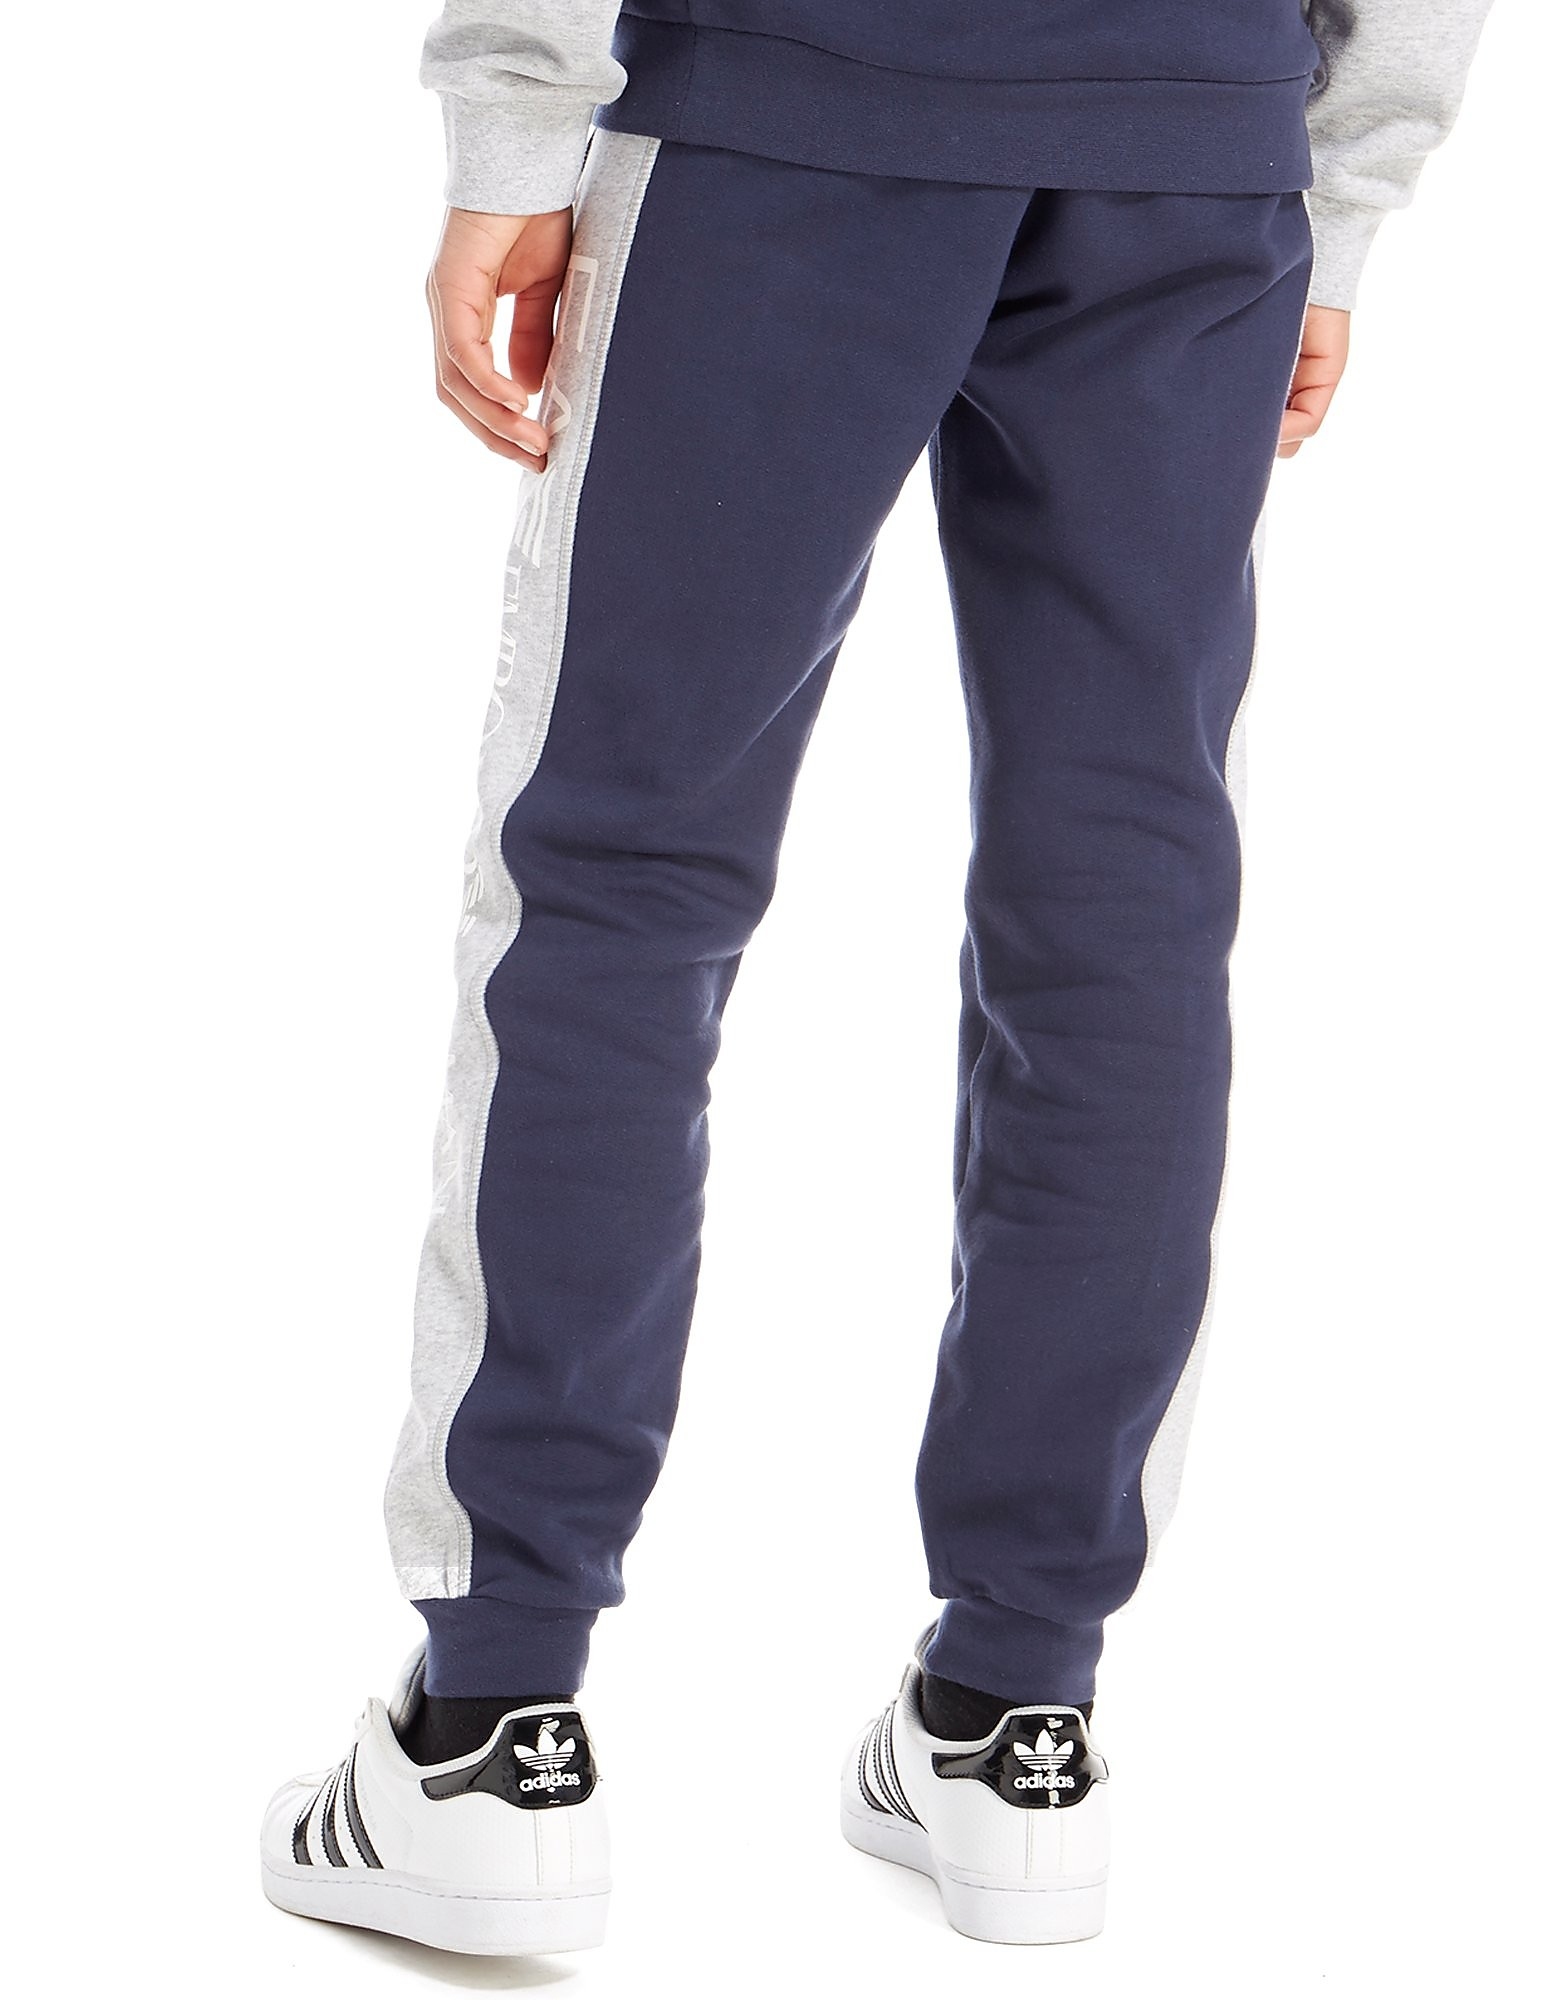 Emporio Armani EA7 Panel Fleece Pants Junior